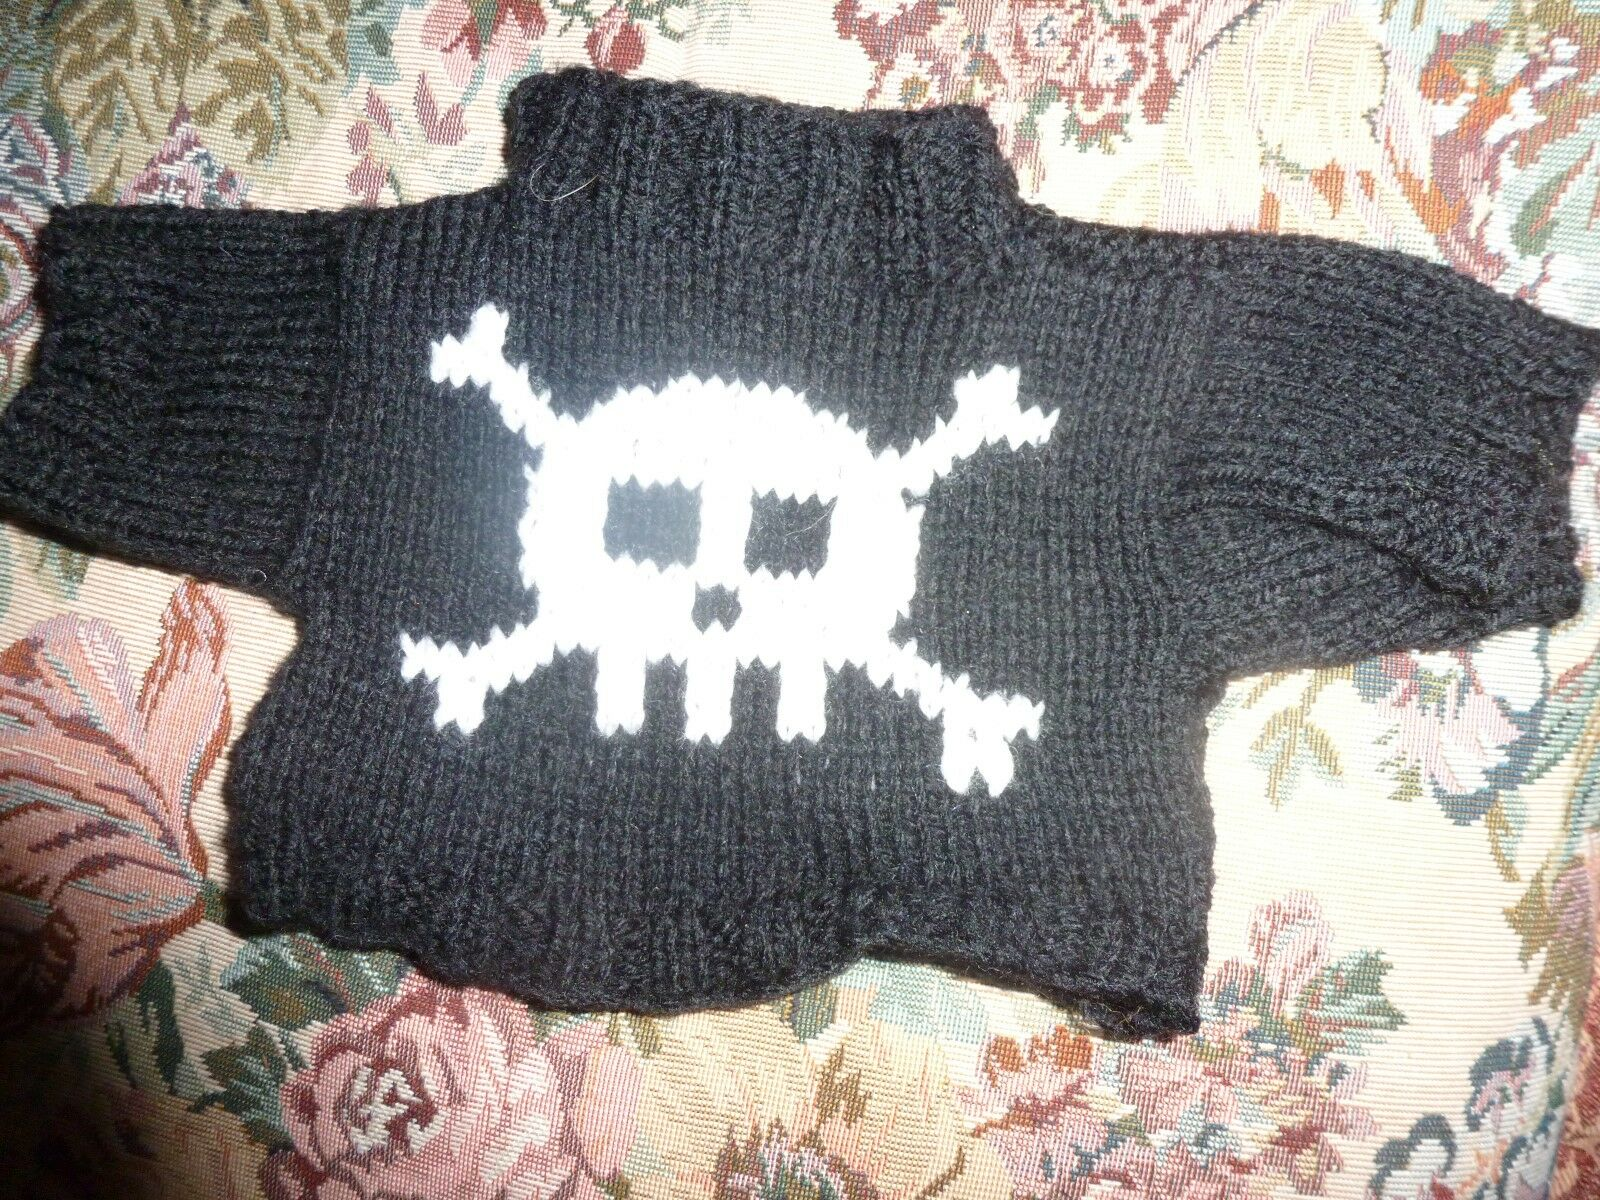 Knitting Pattern Pirate Jumper : Bn Hand Knitted Pirate Jumper With White Skull & Crossbones To Fit Build ...